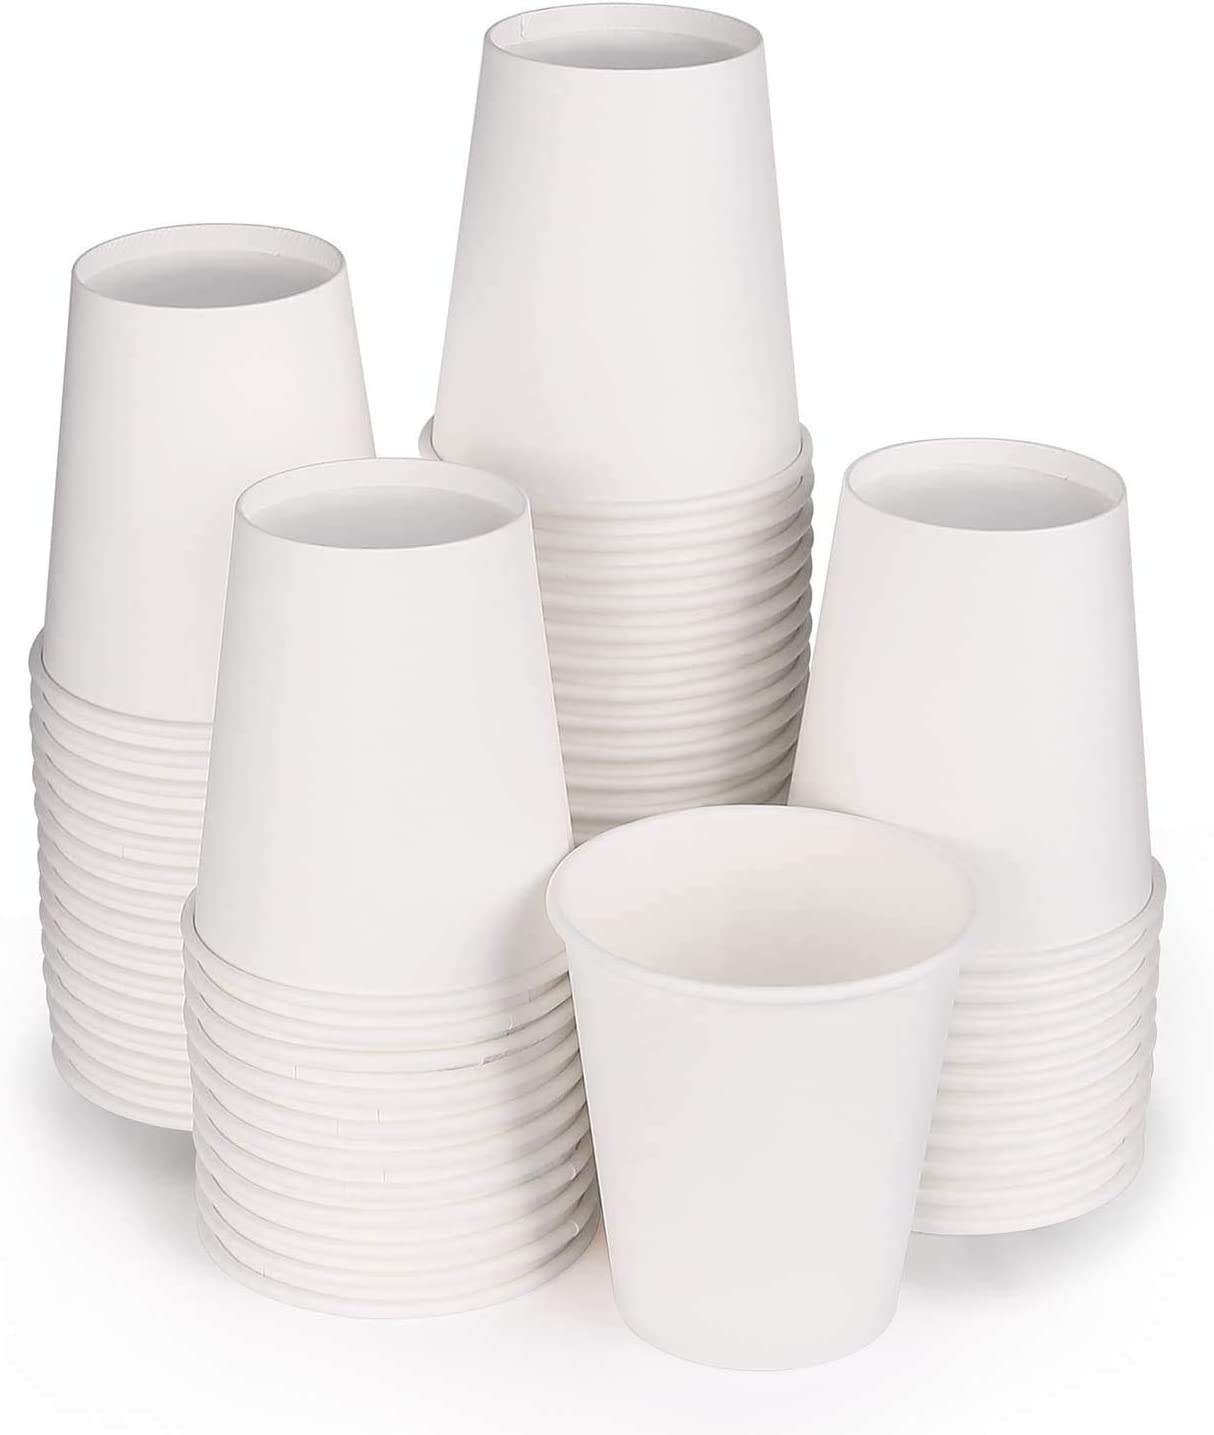 FULING 100 Count 8oz disposable paper cups, hot paper cups, white paper cups for On the Go Hot and Cold Beverage, Espresso, Bathroom Mouthwash, Coffee Cups